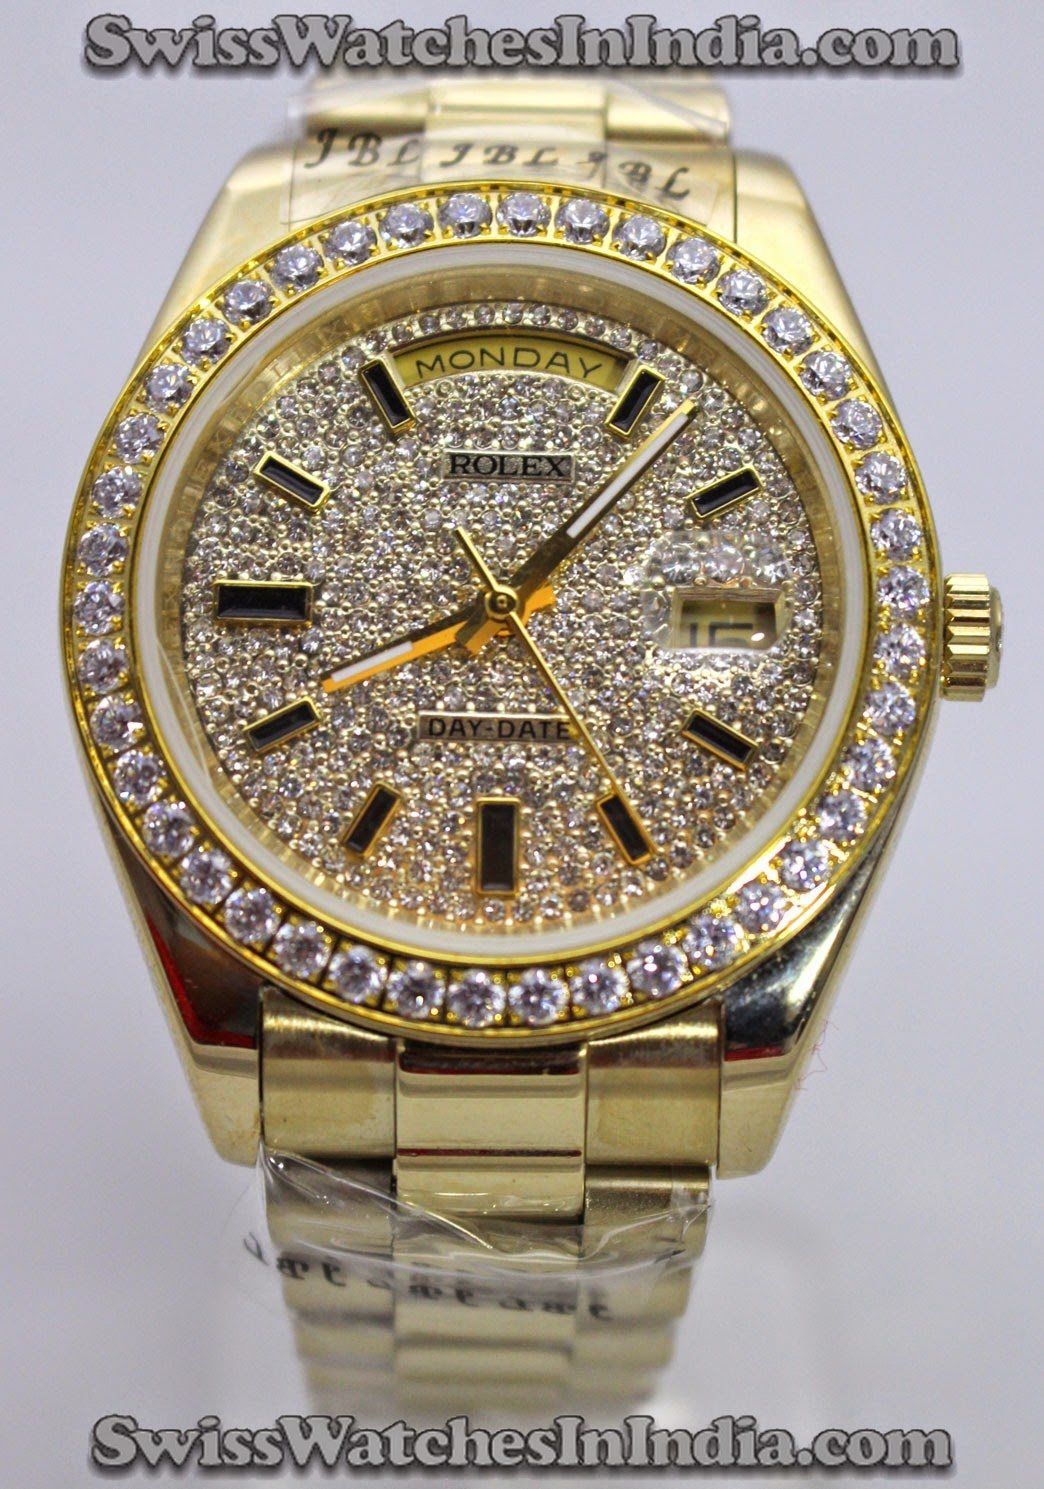 Diamond rolex replica - Tag Heuer Connected Modular With Intel Inside Announced Prices Global Customer Tag Heuer Omega Rado Rolex